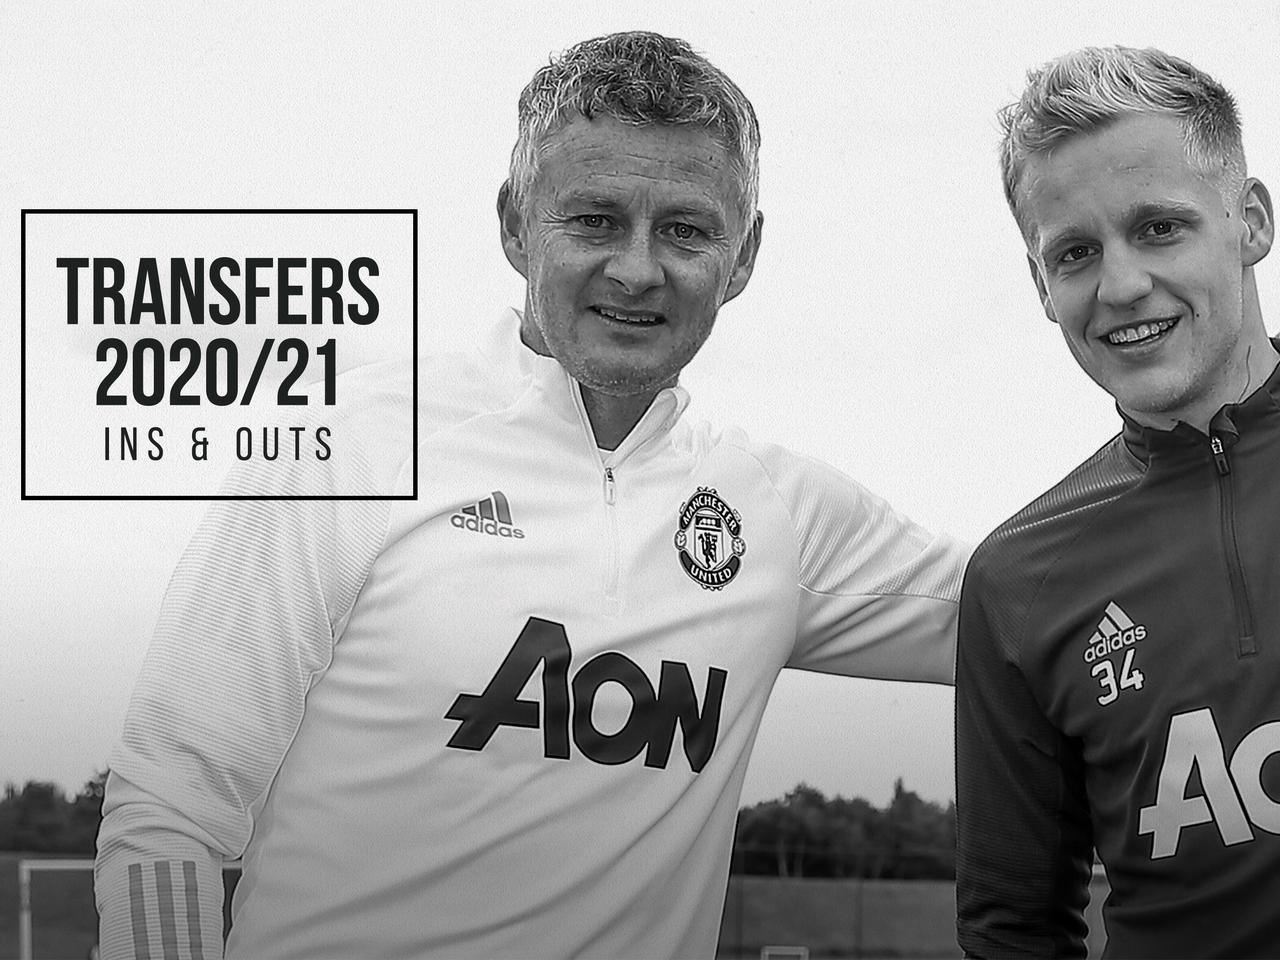 Utd Summer 2022 Calendar.Man Utd Ins And Outs Of The Summer Transfer Window In 2020 Manchester United